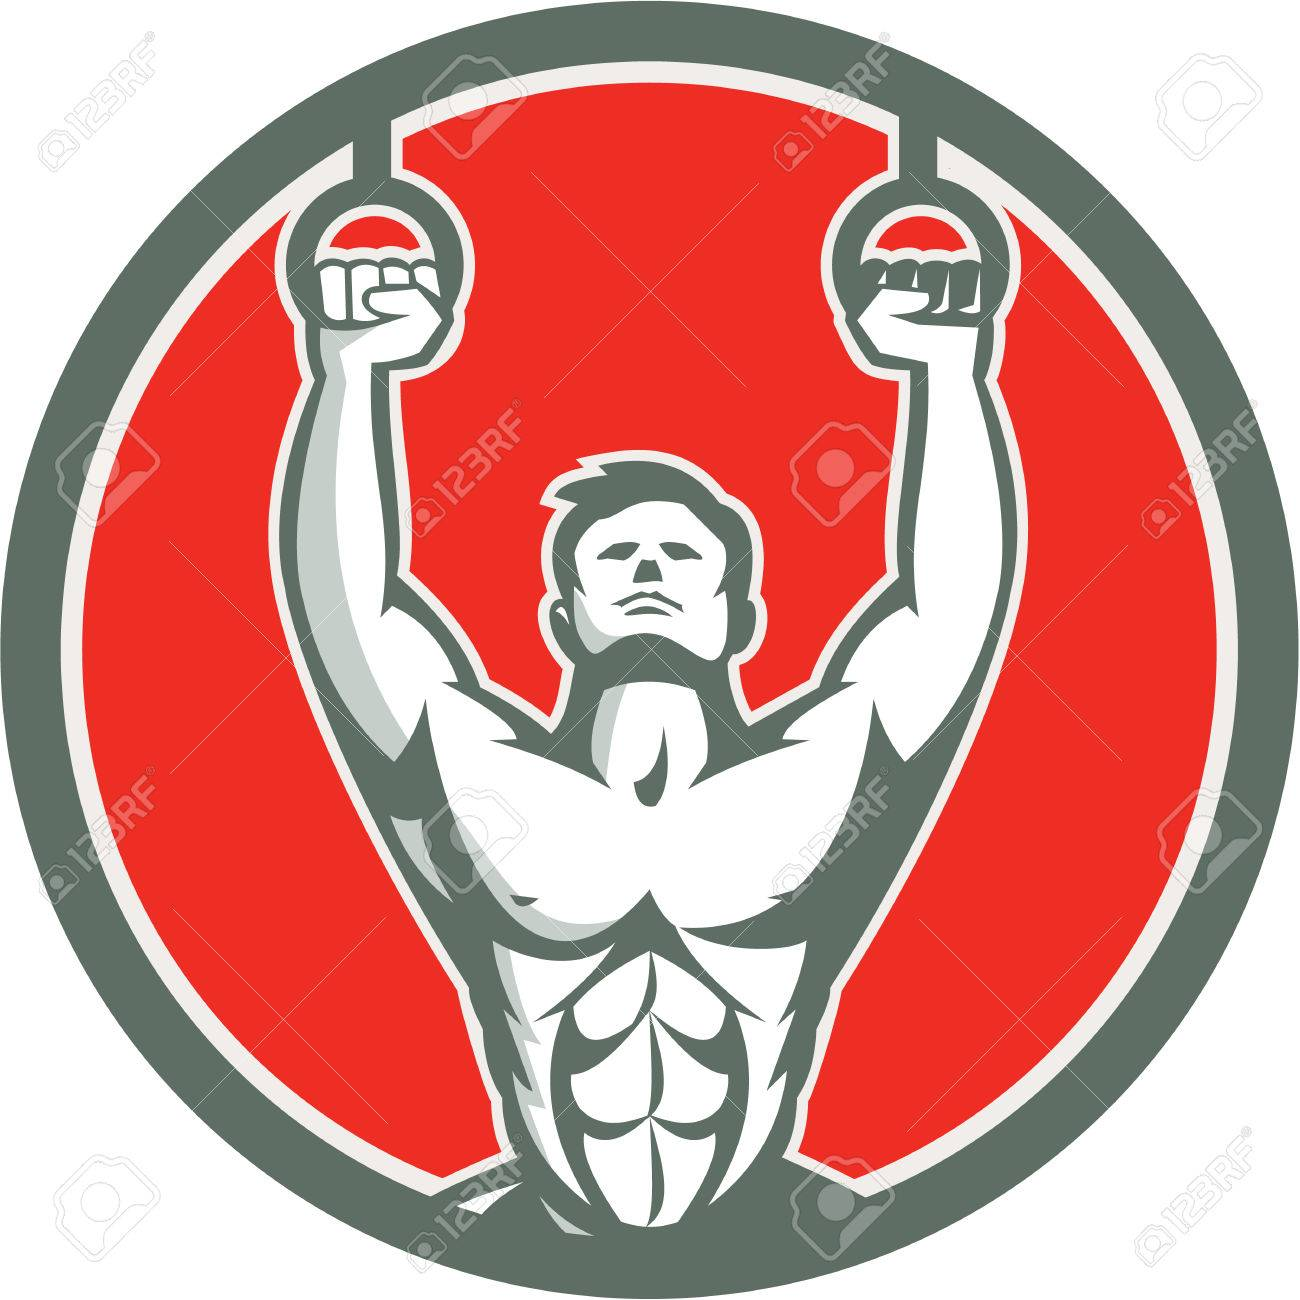 Illustration of a crossfit athlete body weight exercise hanging hangoing on gymnastic rings kipping muscle up facing front inside shield crest done in retro style on isolated white background - 36934341